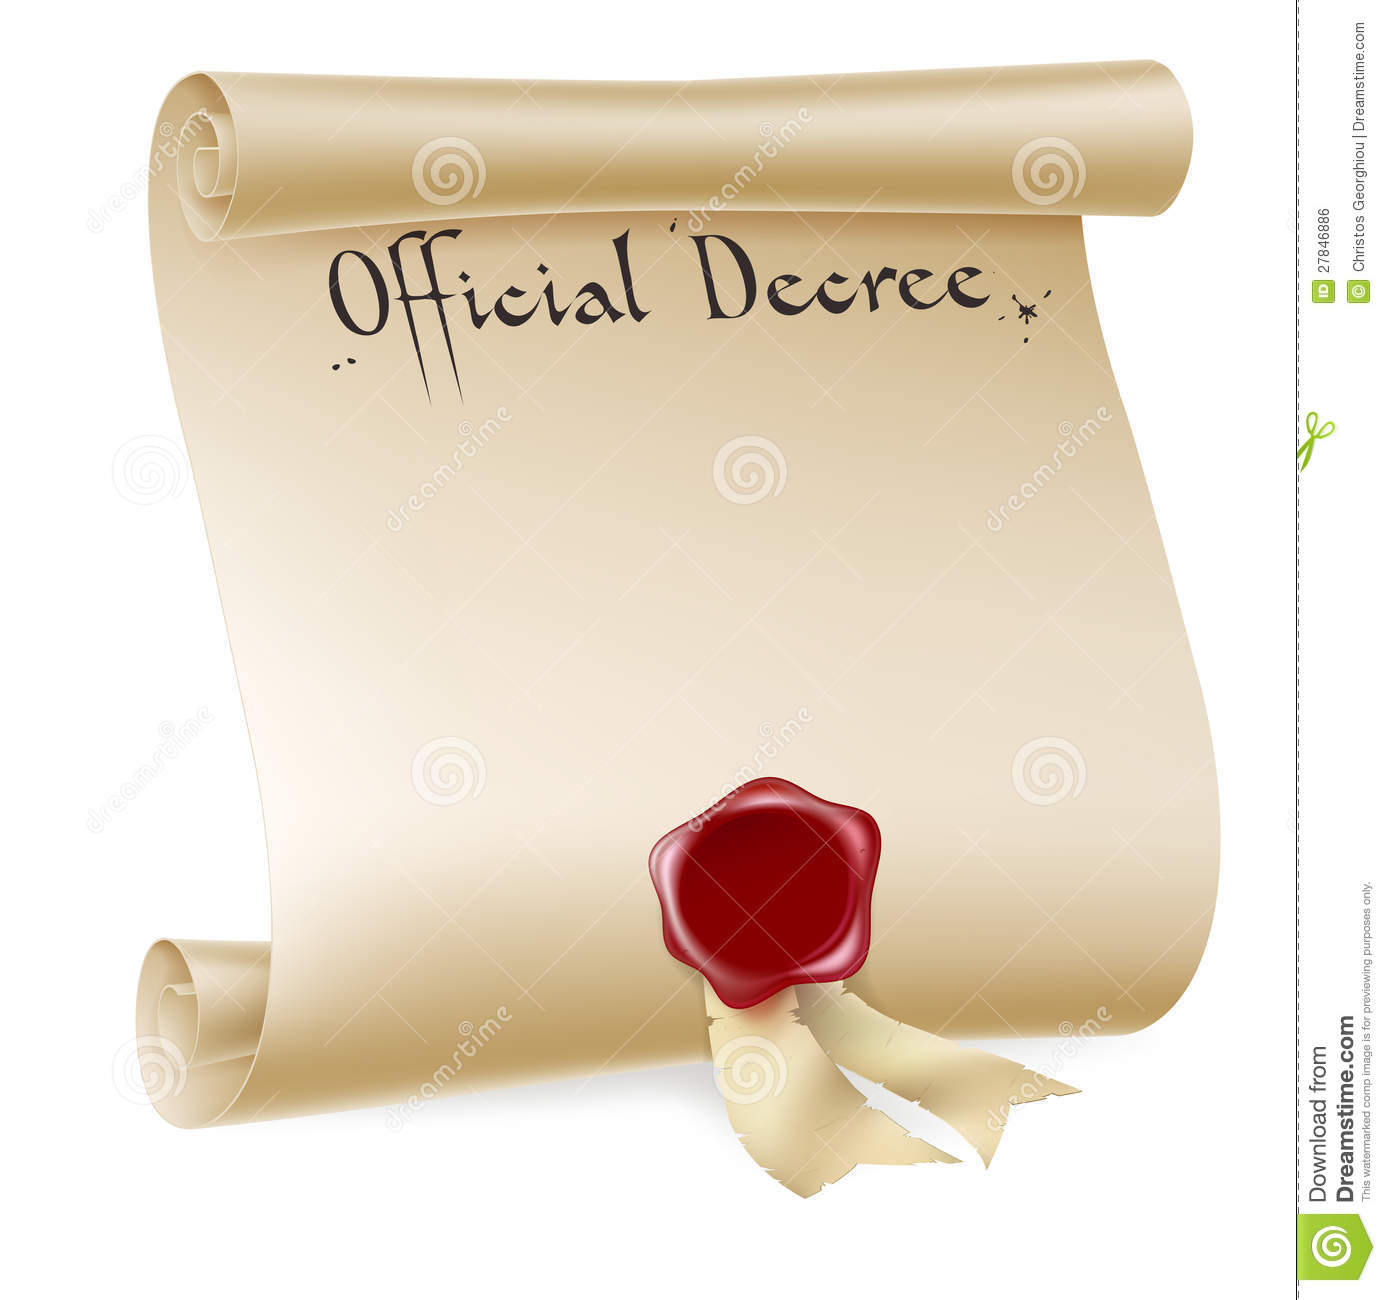 Official Decree Scroll With Red Wax Seal Stock Vector Illustration